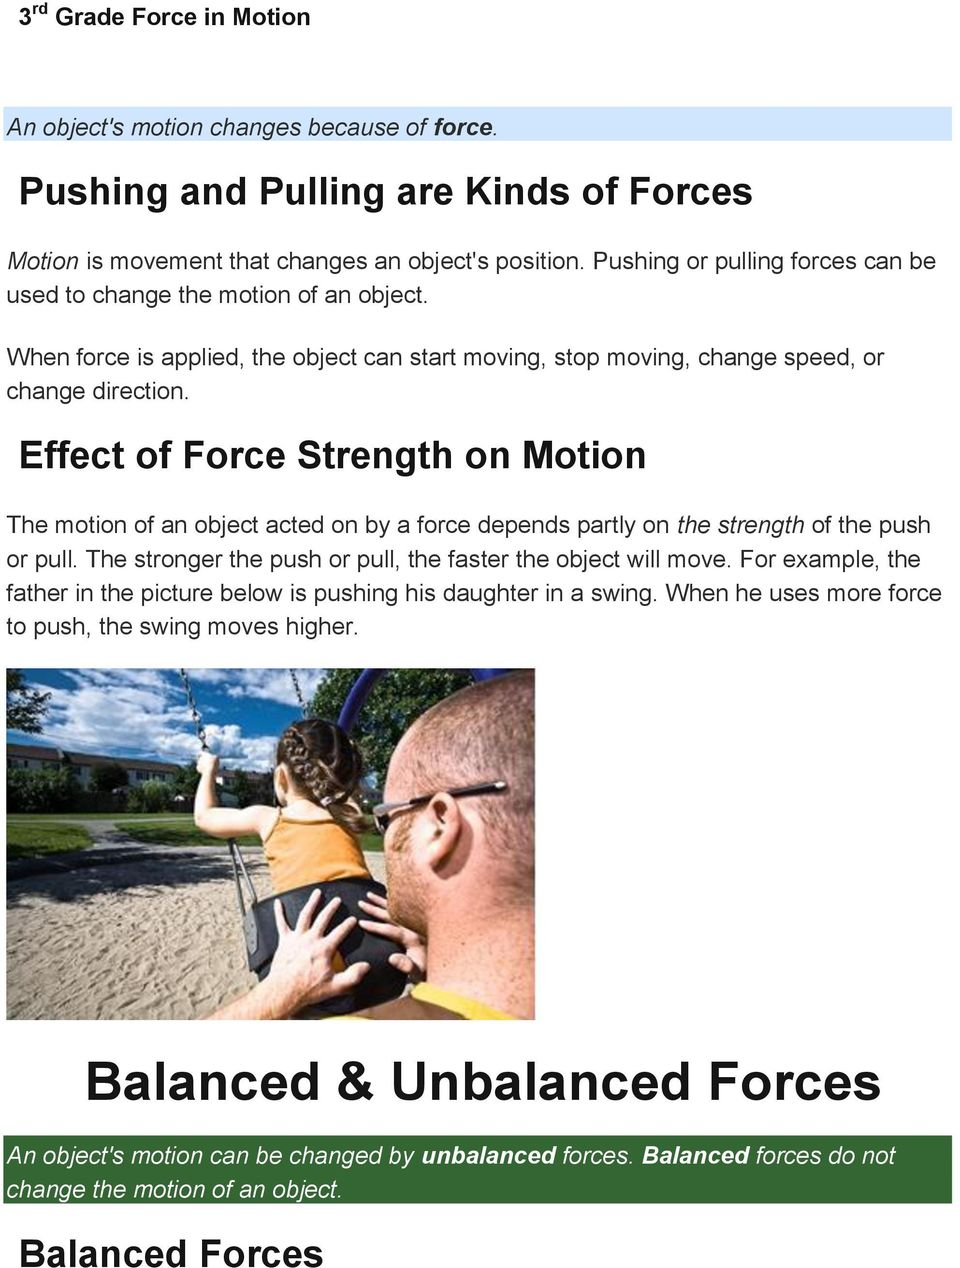 Effect of Force Strength on Motion The motion of an object acted on by a force depends partly on the strength of the push or pull. The stronger the push or pull, the faster the object will move.